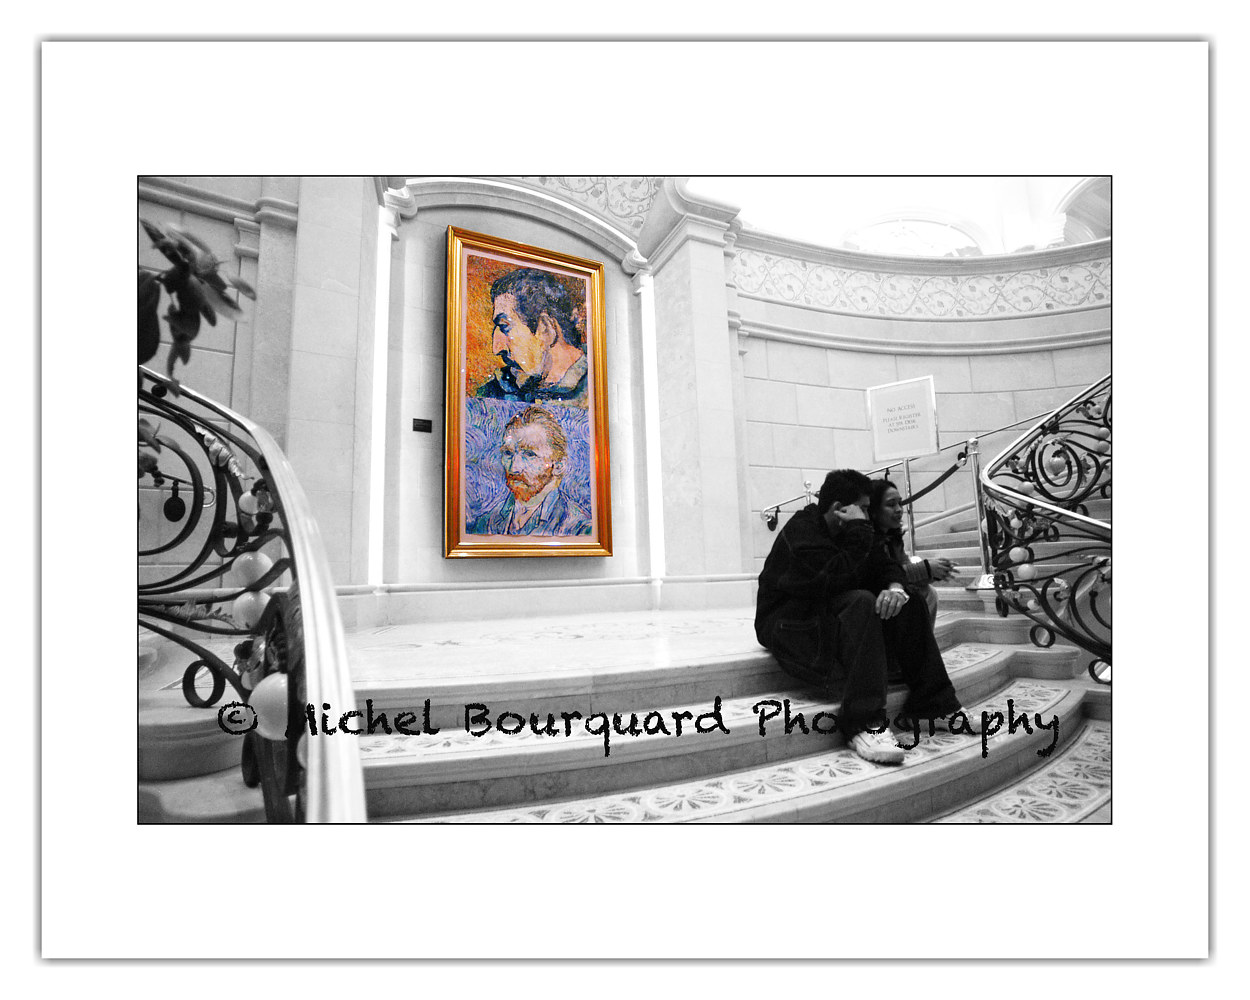 Waiting for Van Gogh's Inspiration in a Staircase by Michel Bourquard